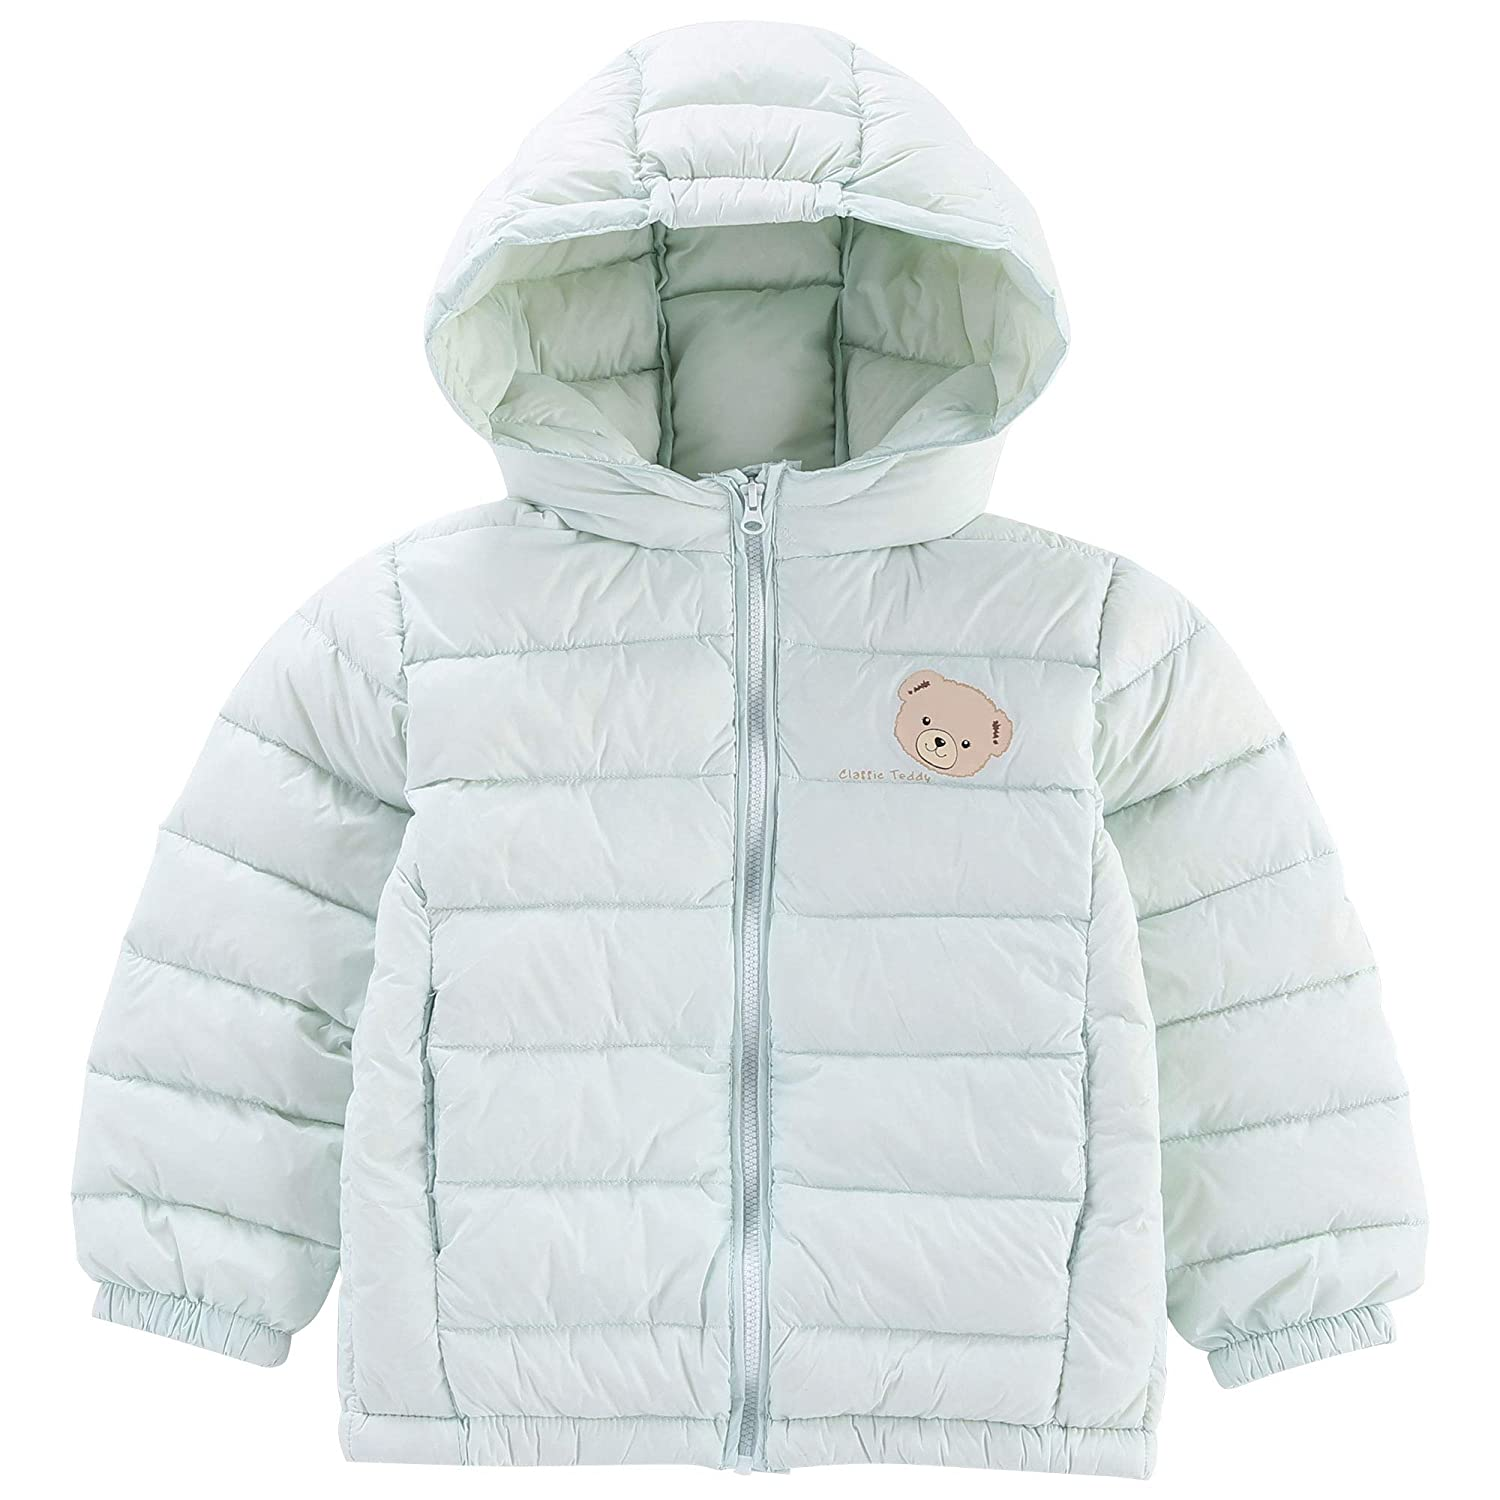 Classic Teddy Baby Boys Girls Down Jacket Kids Hoodie Coat Winter Outerwear